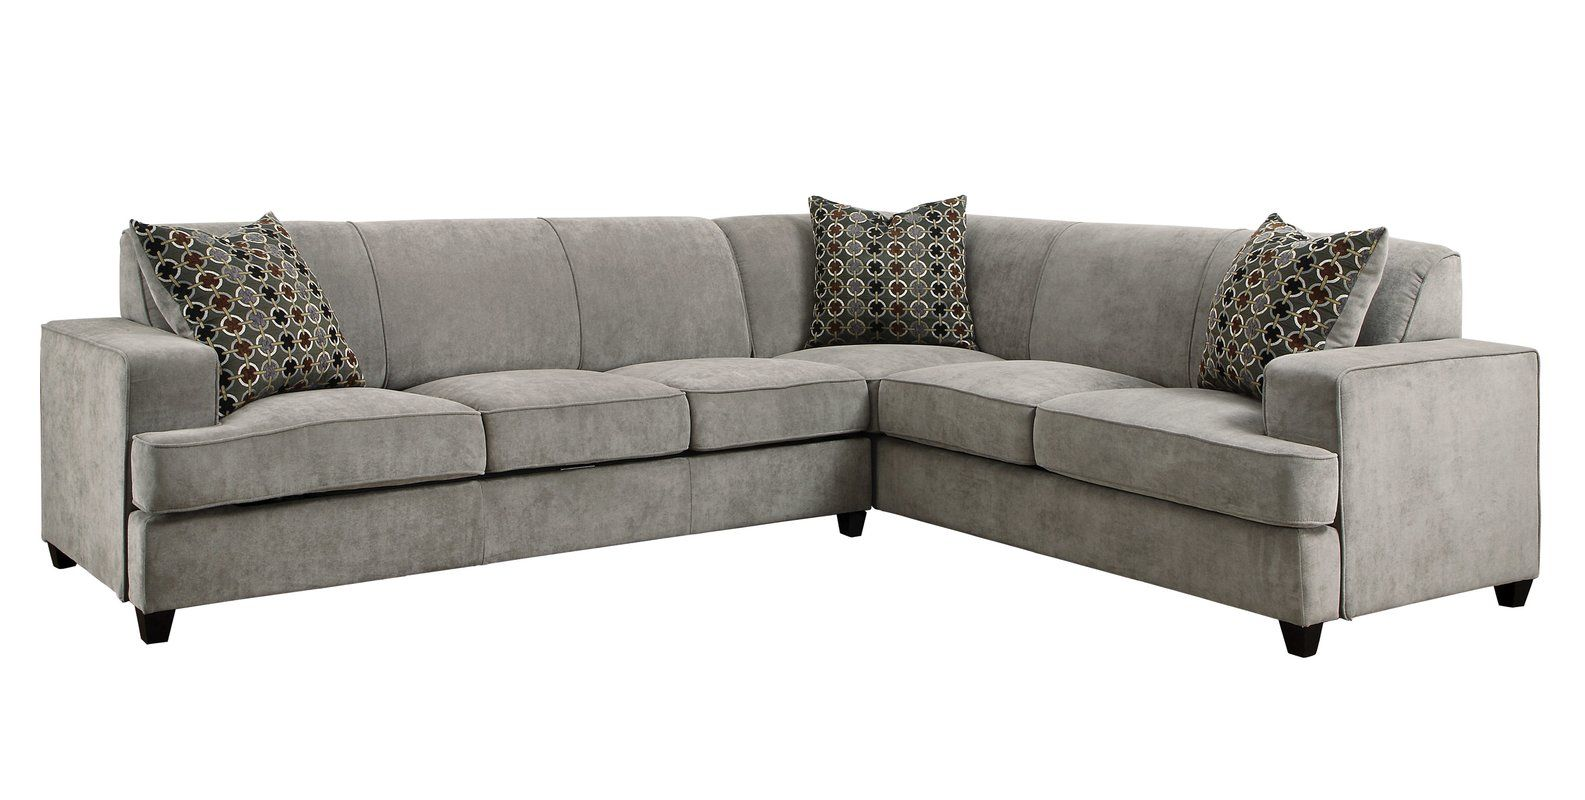 Corner Couch Slipcover Sectional Couch Cover Sectional Sofa Slipcovers Diy Couch Cover